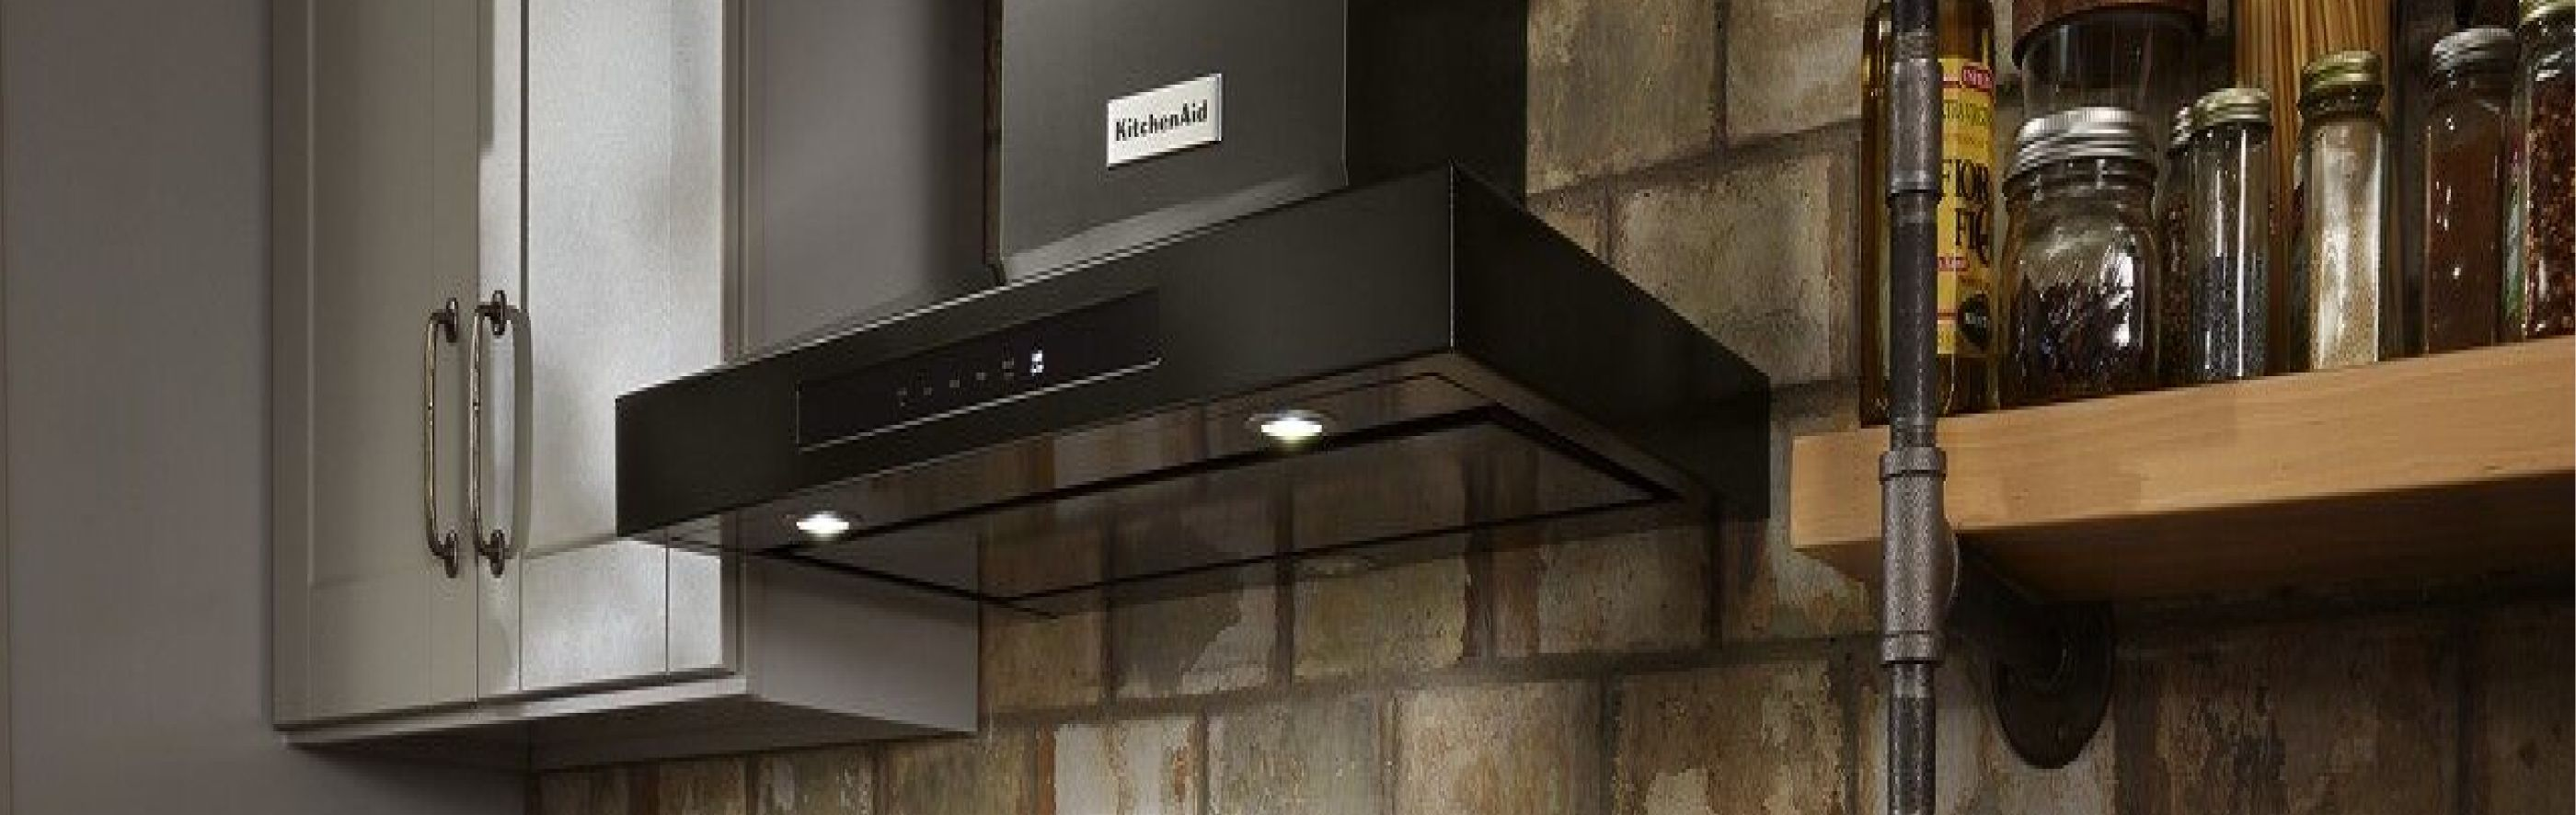 Black KitchenAid® wall mount hood in a kitchen in front of a brick wall